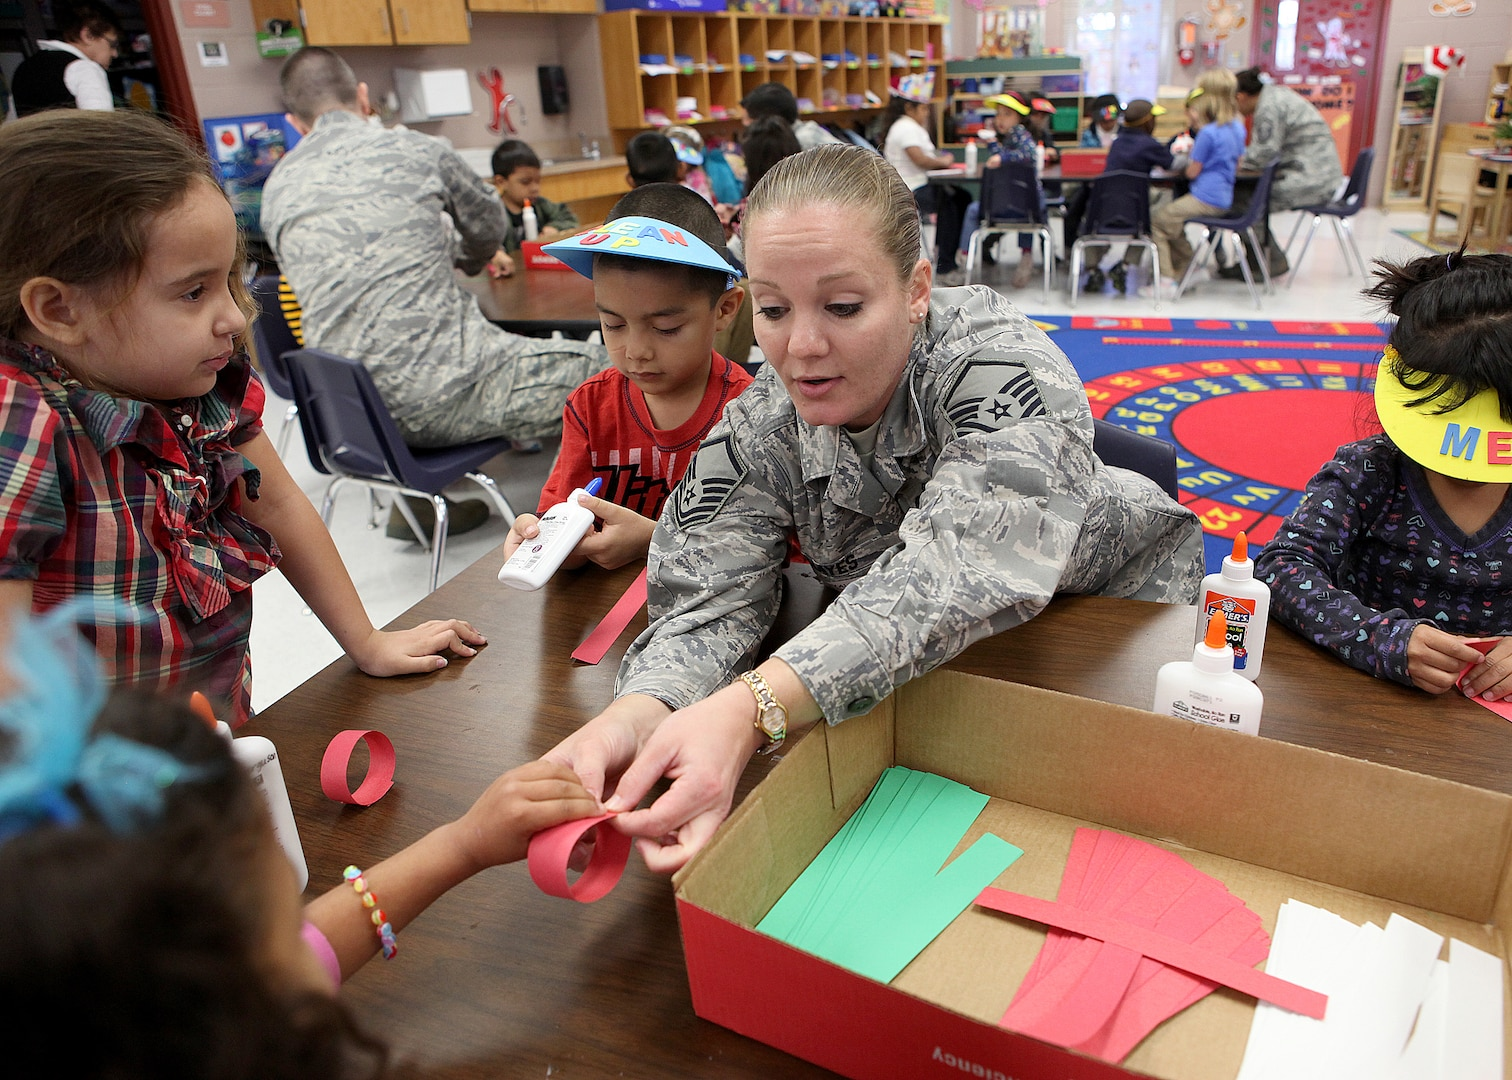 Master Sgt. Christy Hayes, Air Force Intelligence, Surveillance and Reconnaissance Agency, helps Valley Hi Elementary School kindergarten students make a paper chain Dec. 1. Airmen from AFISRA adopted the classroom through the Joint Base San Antonio adopt-a-school program. (U.S. Air Force photo/Robbin Cresswell)